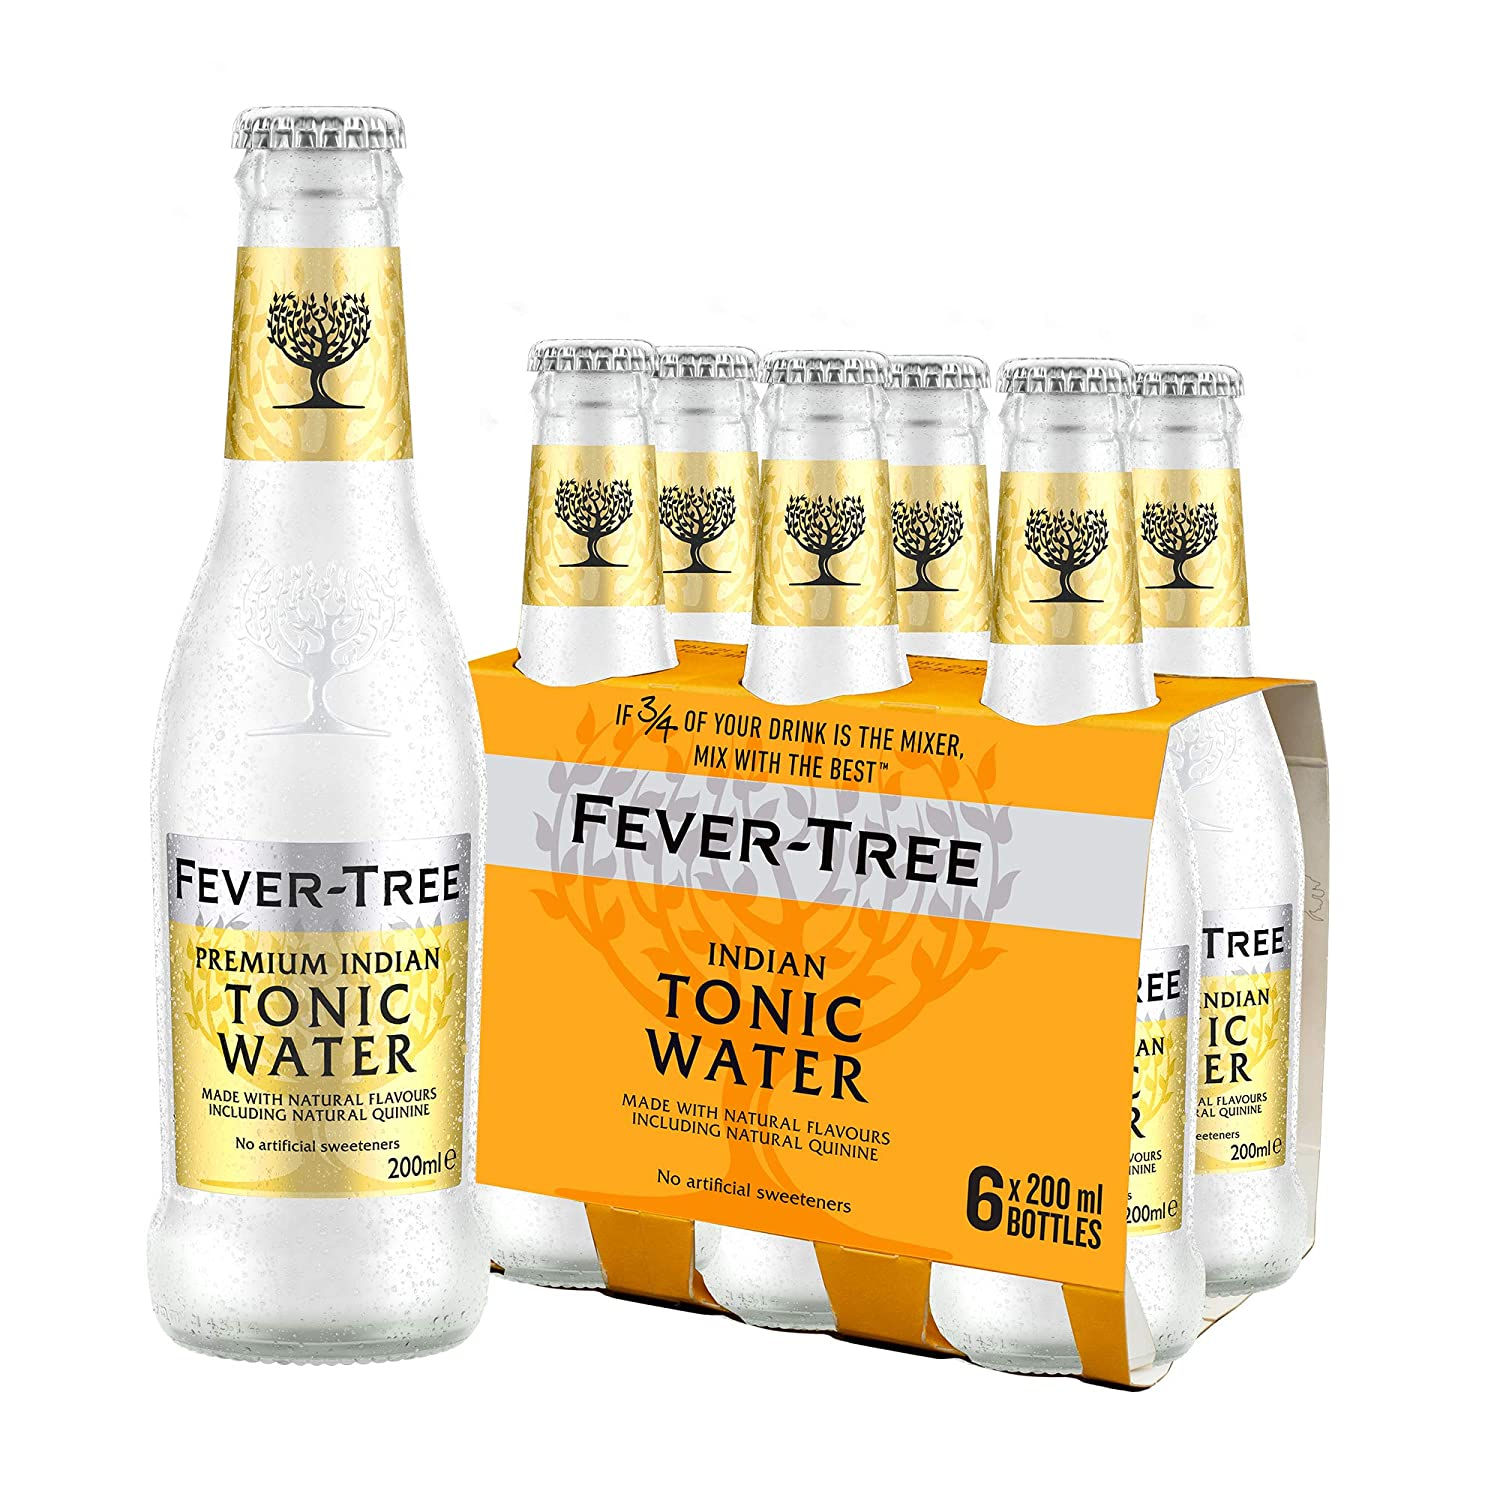 Fever-Tree Premium Indian Tonic Water (Pack of 6 x 200 ml)